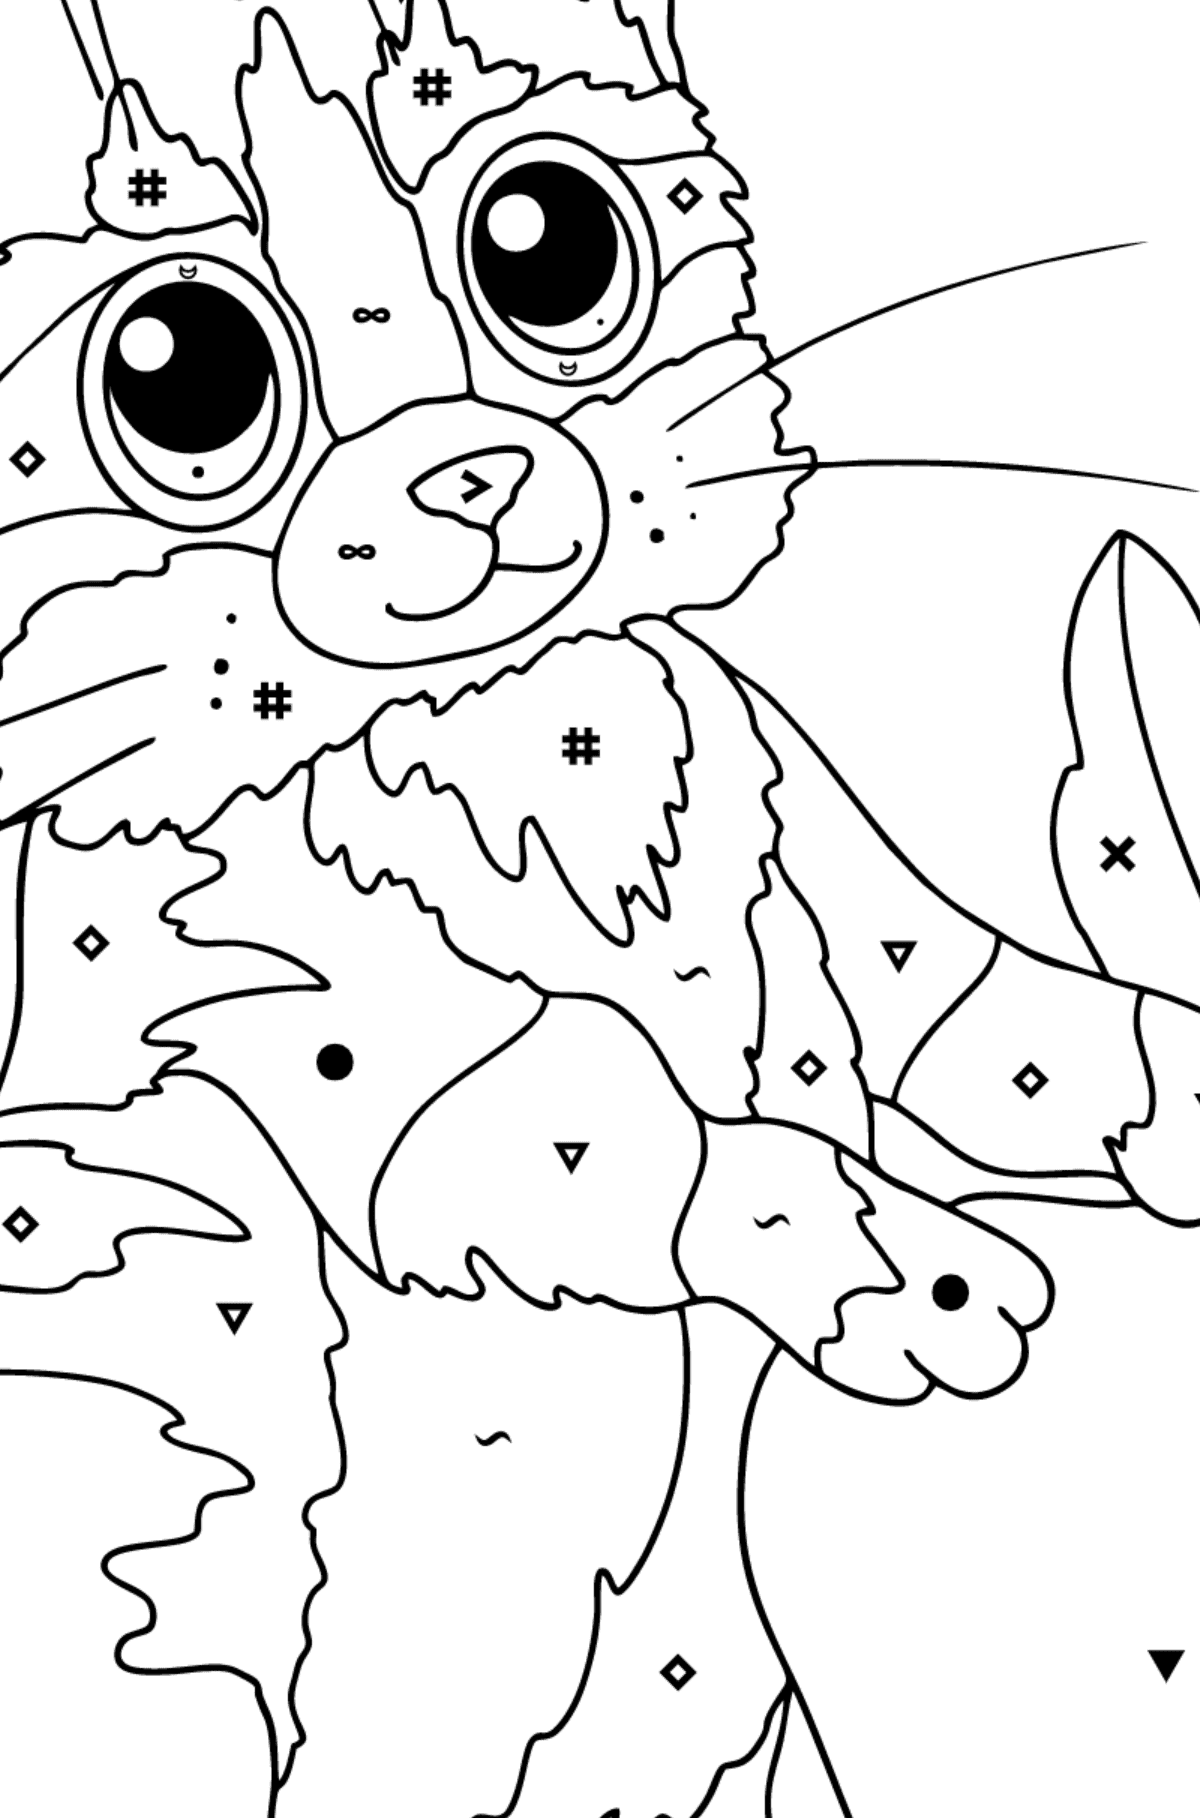 Coloring Page - A Cat and a Ripe Apple - Coloring by Symbols for Kids